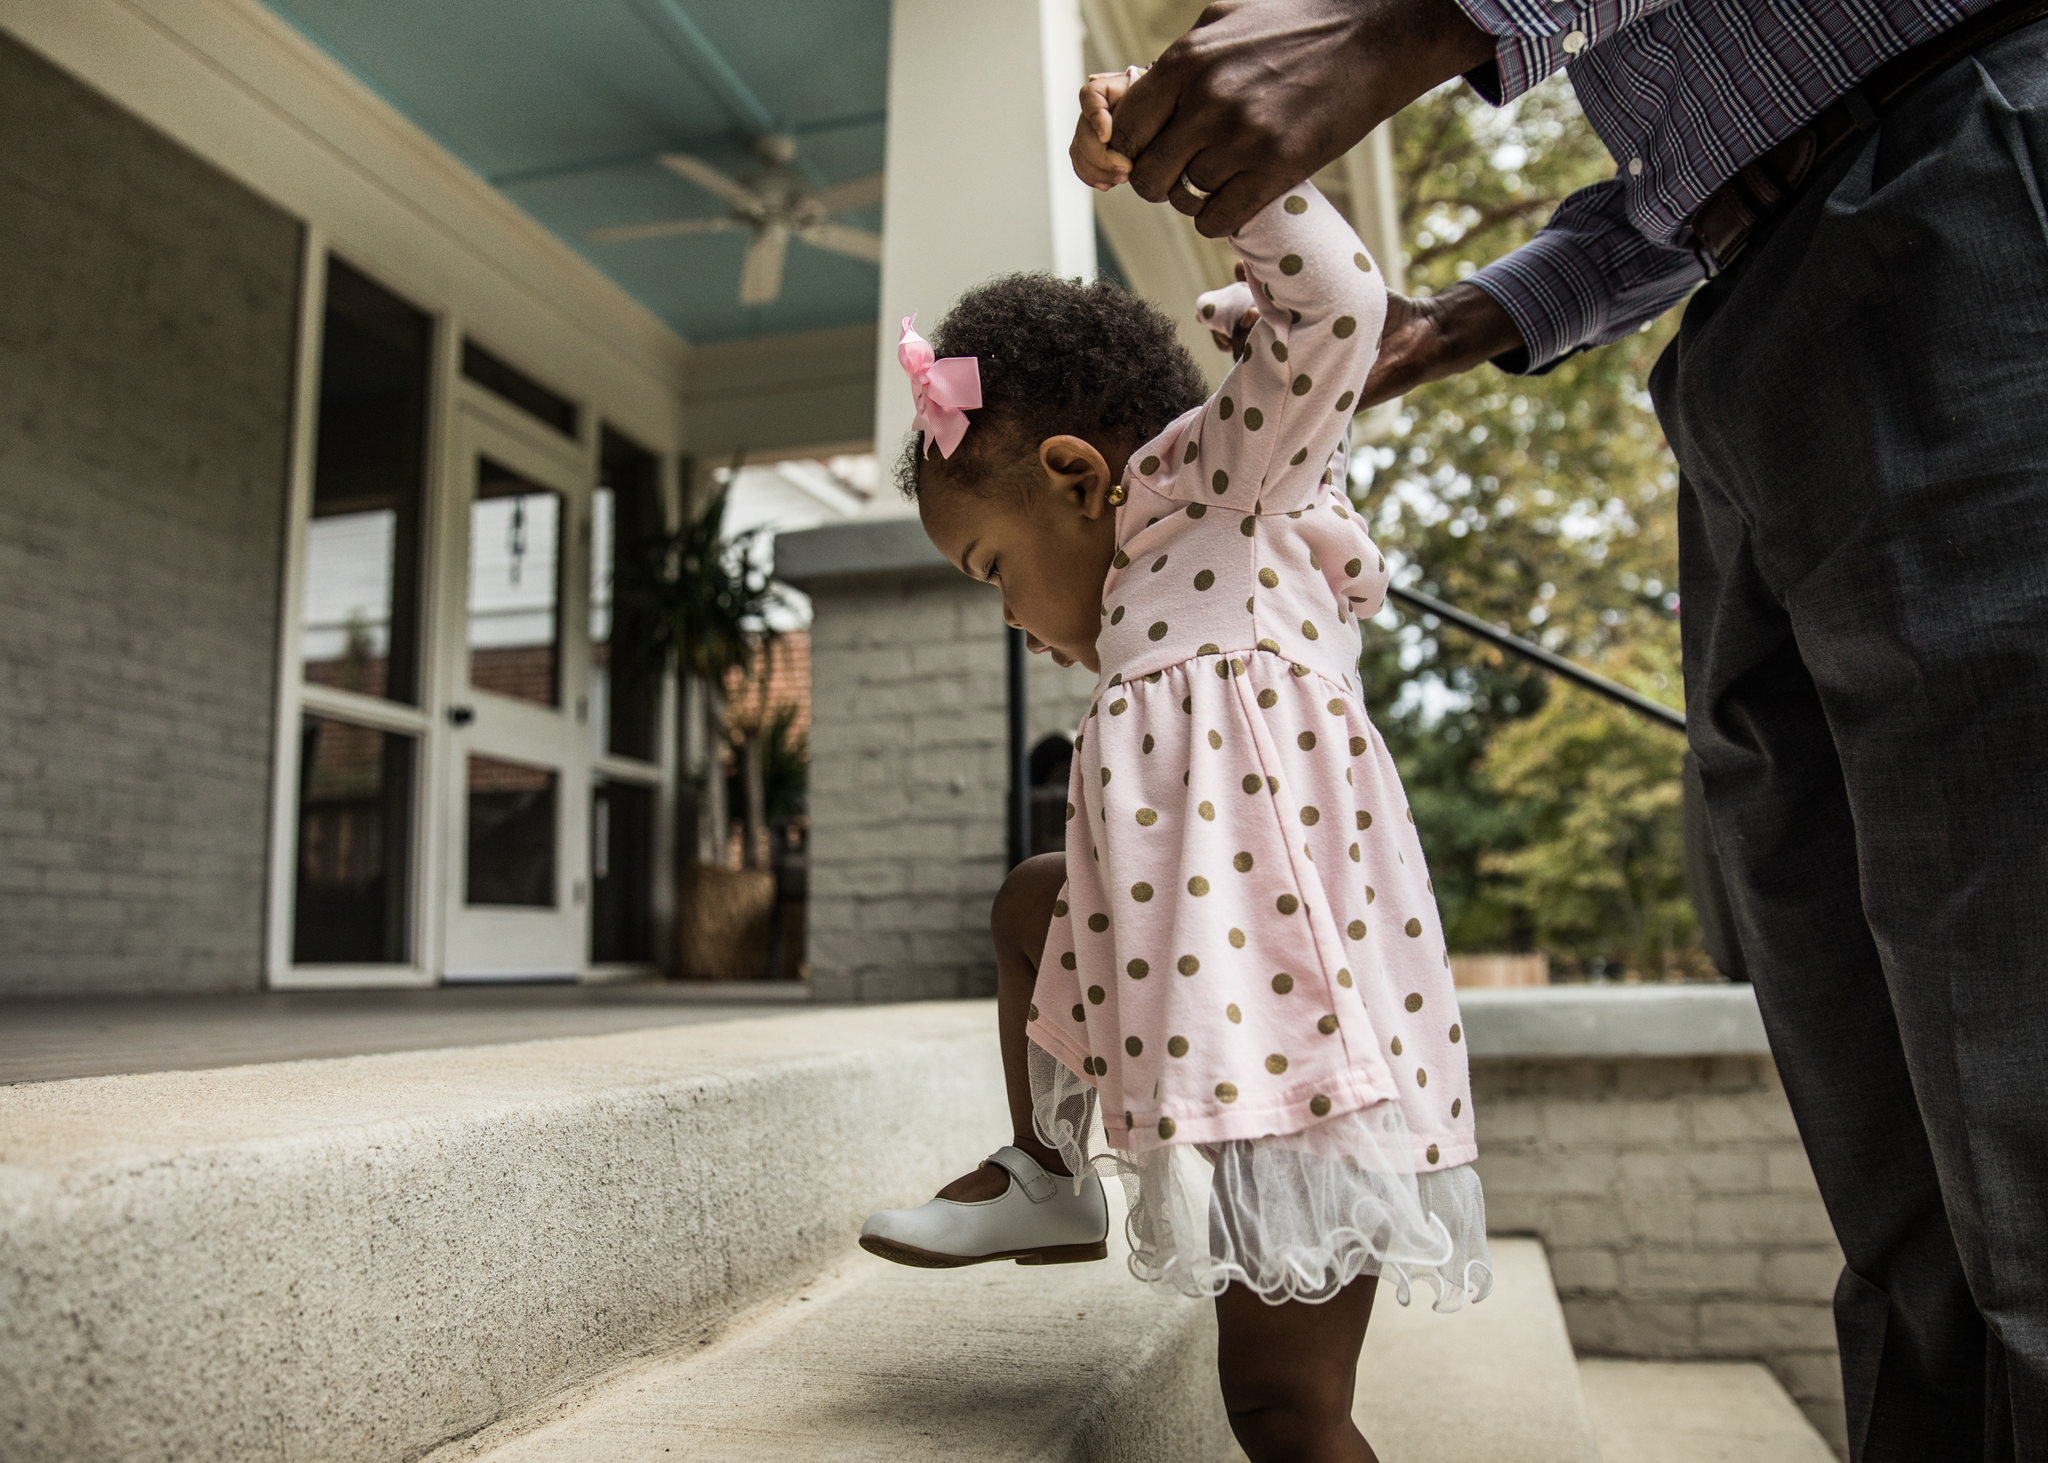 The myth of the absent Black father | Essay